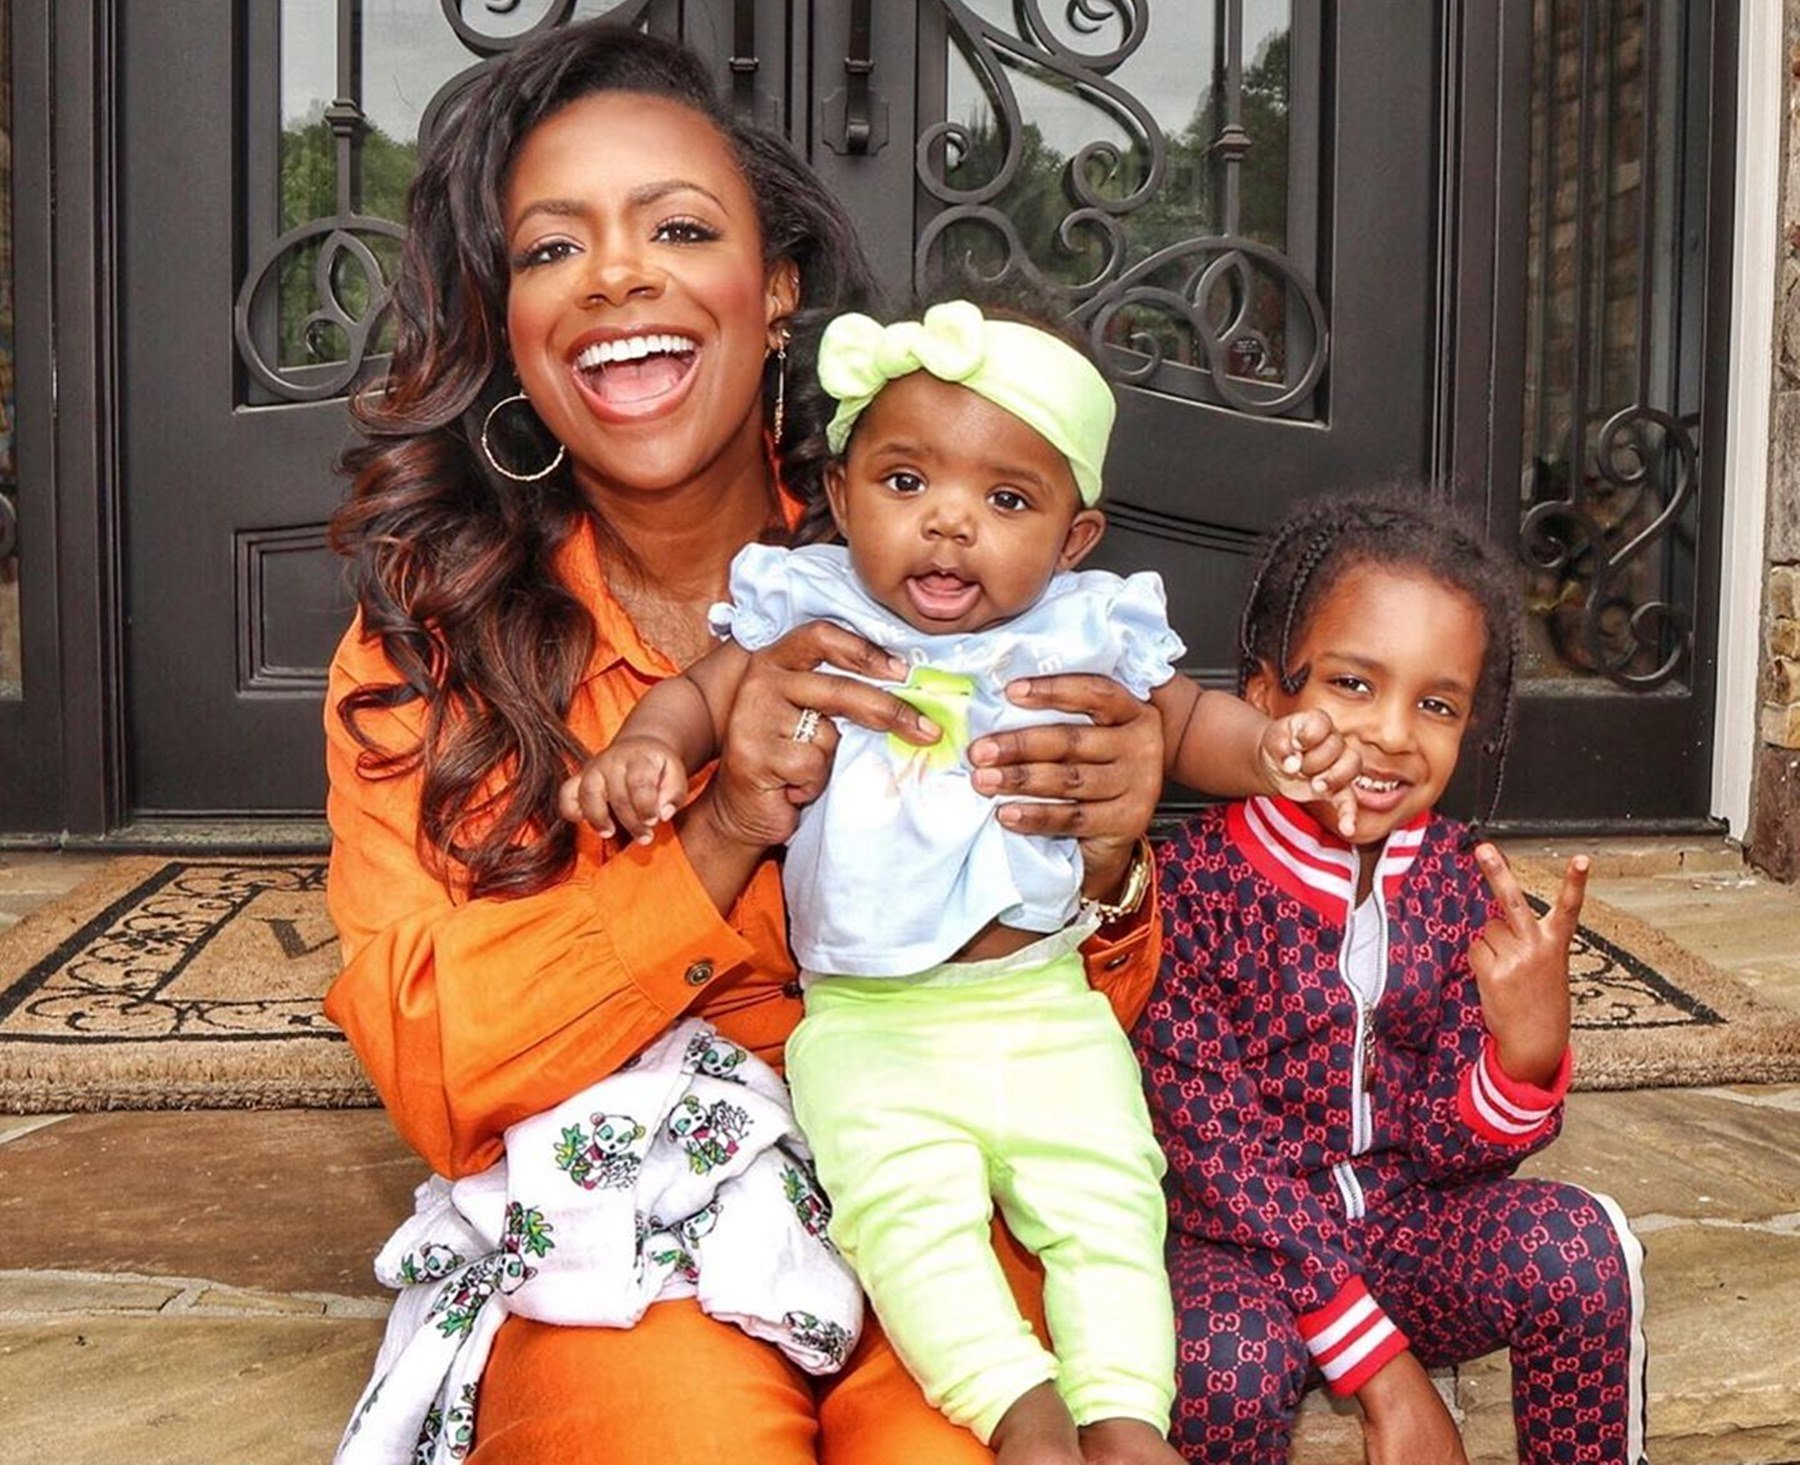 Kandi Burruss' Daughter, Blaze Tucker Is A Busy Girl, Checking Out What's Going On In Ace Wells Tucker's Room - Check Out The Funny Video